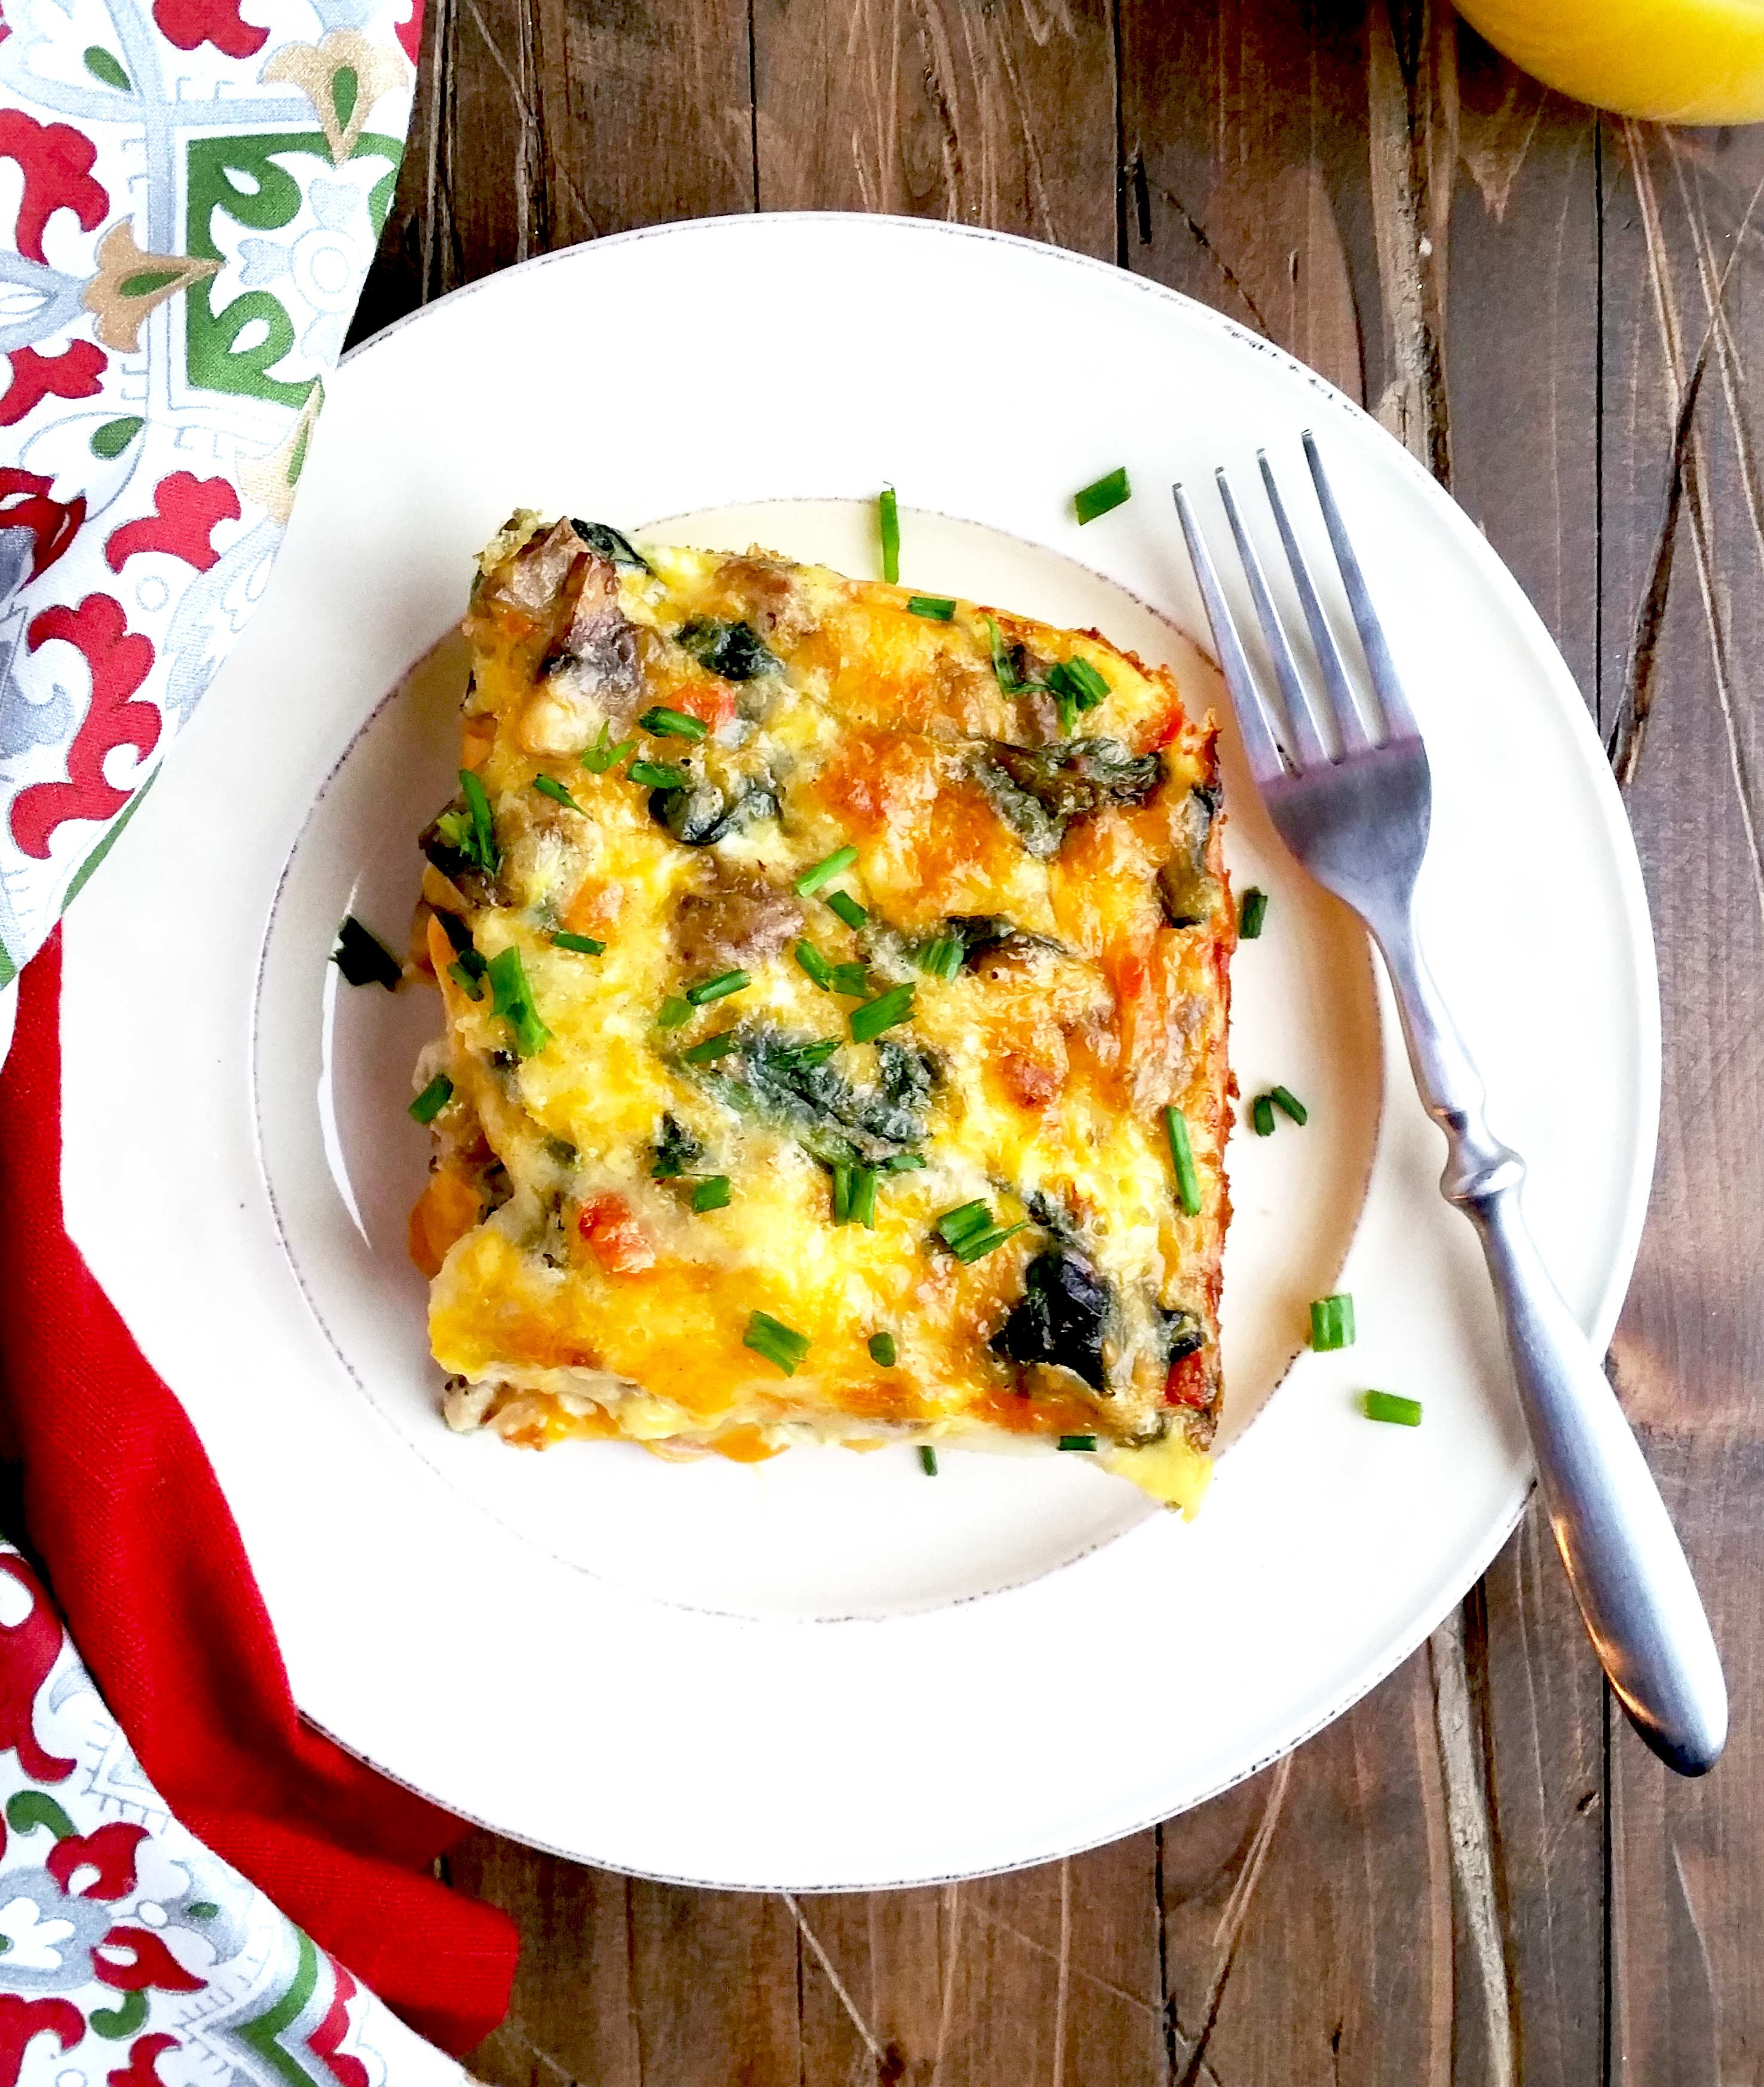 Best Egg Breakfast Recipes  Best Breakfast Egg Casserole